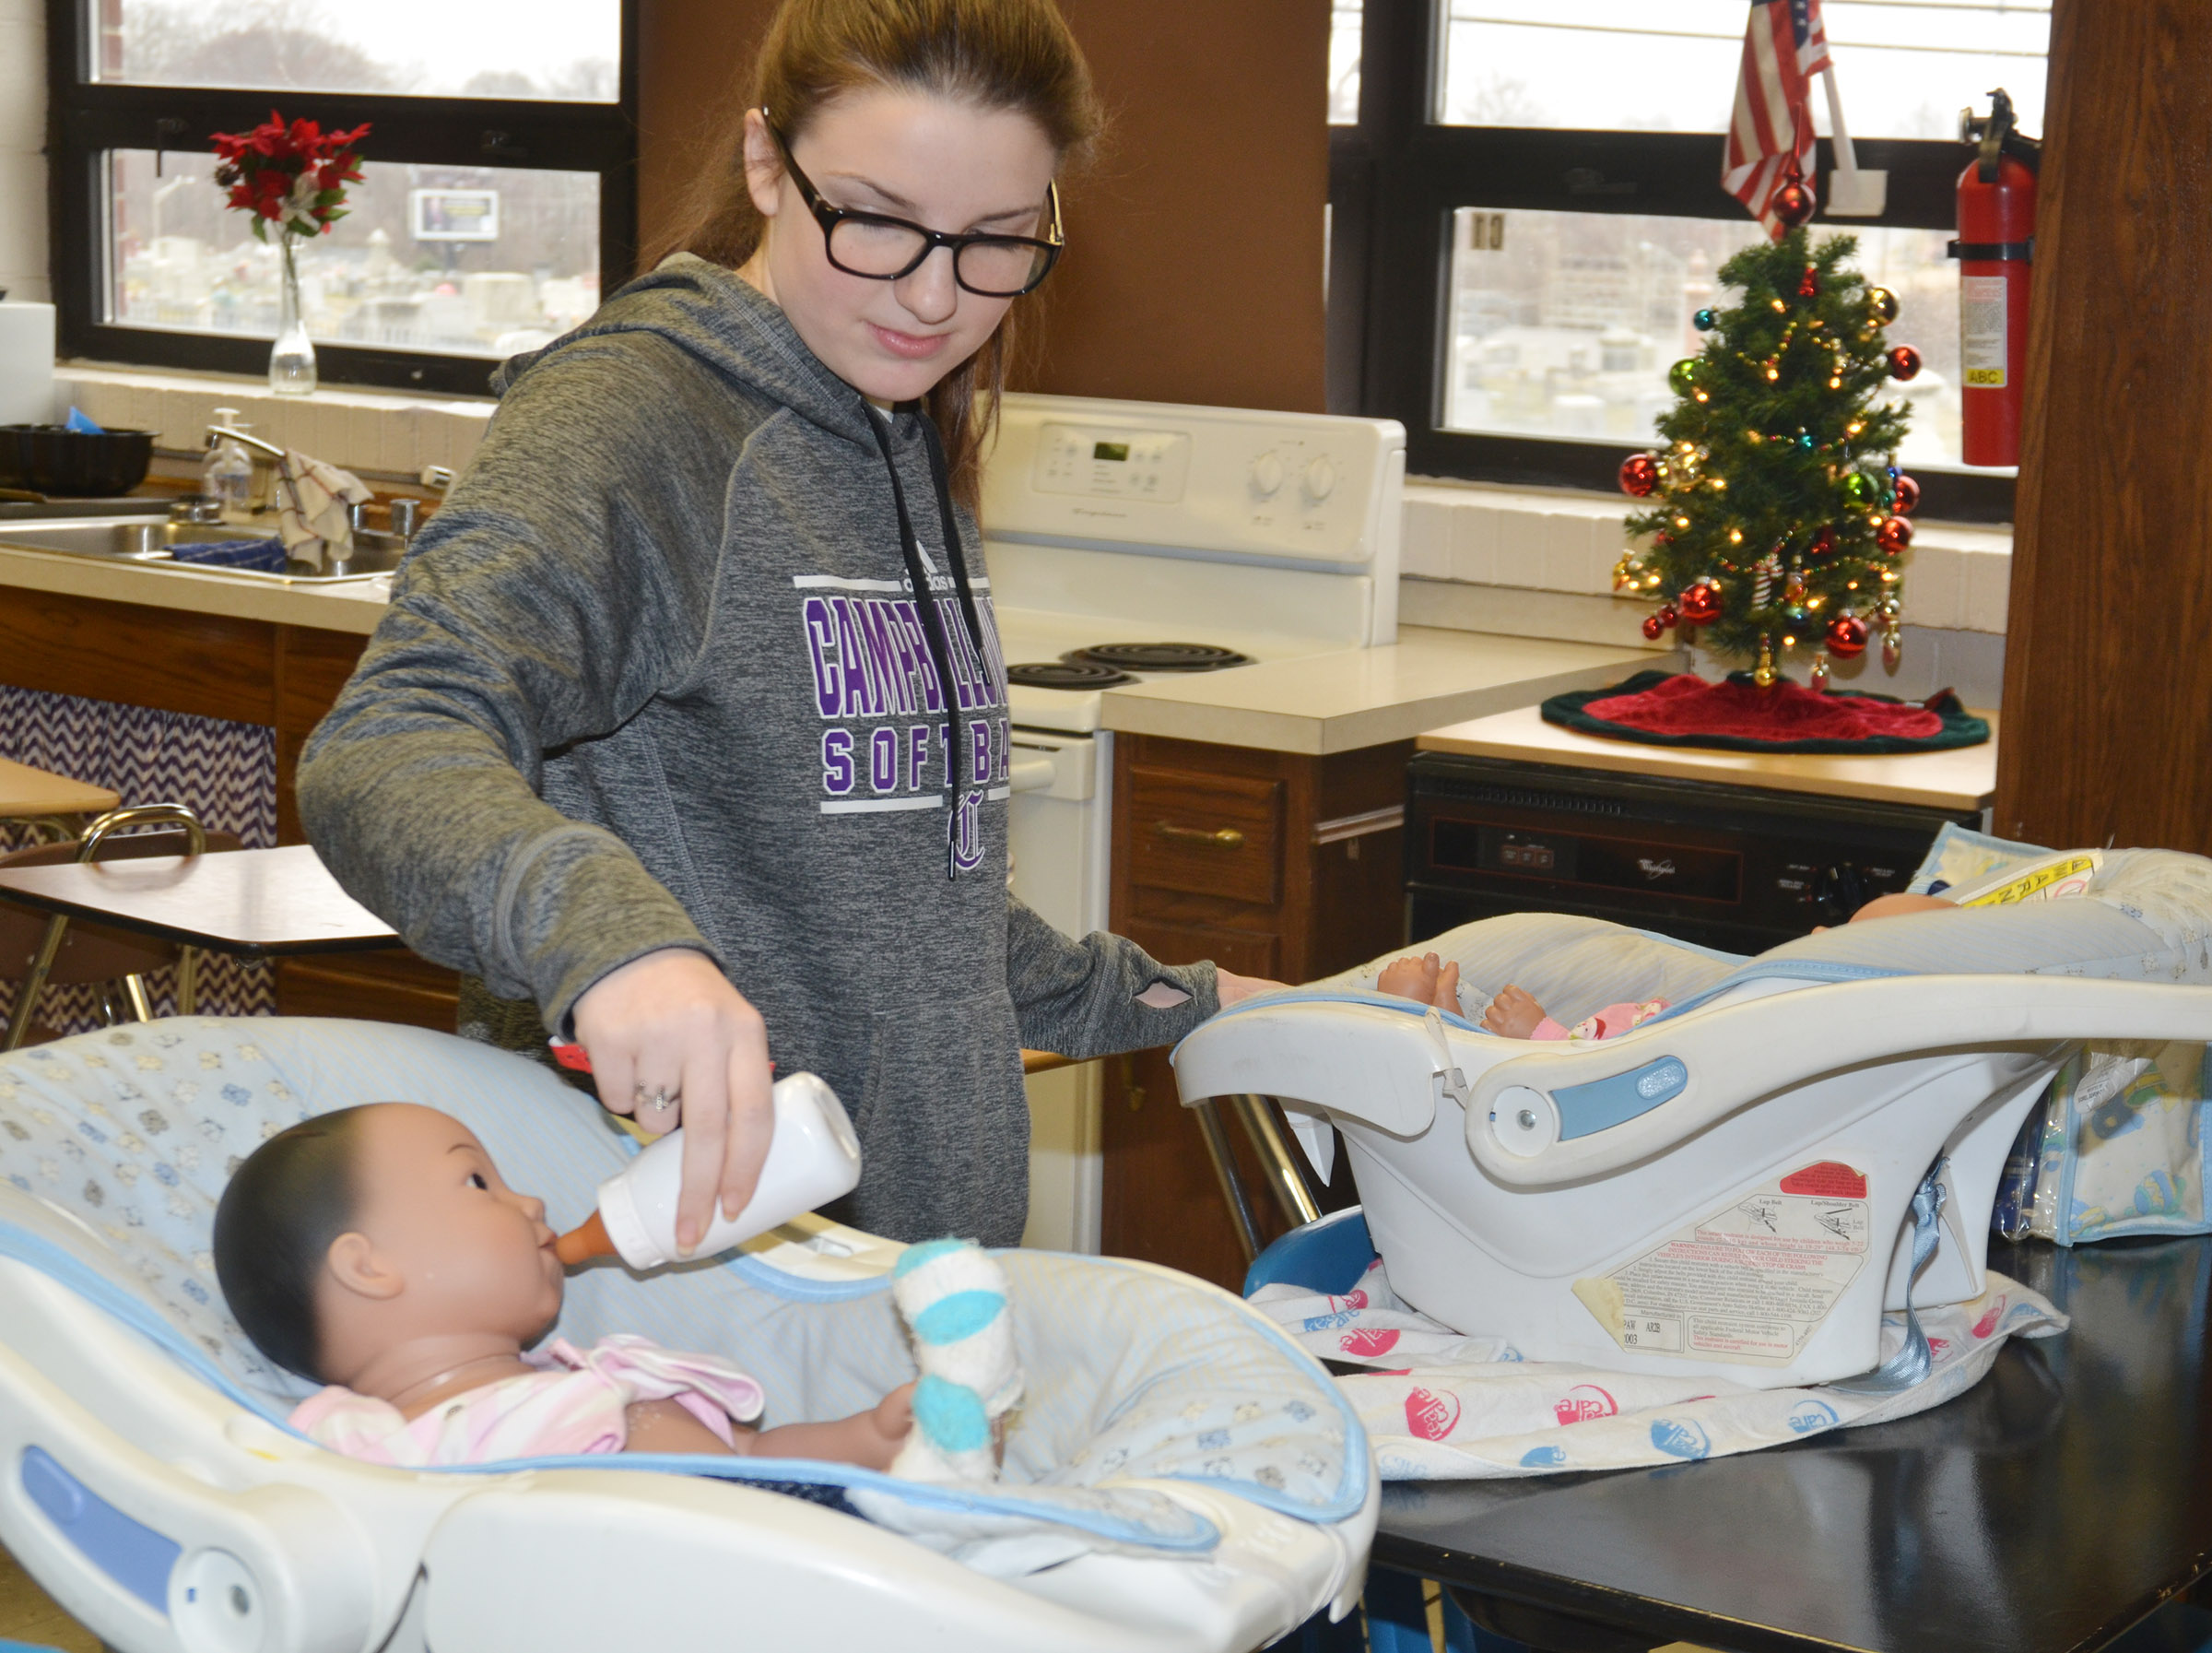 CHS freshman Sydney Wilson feeds one baby while rocking another.